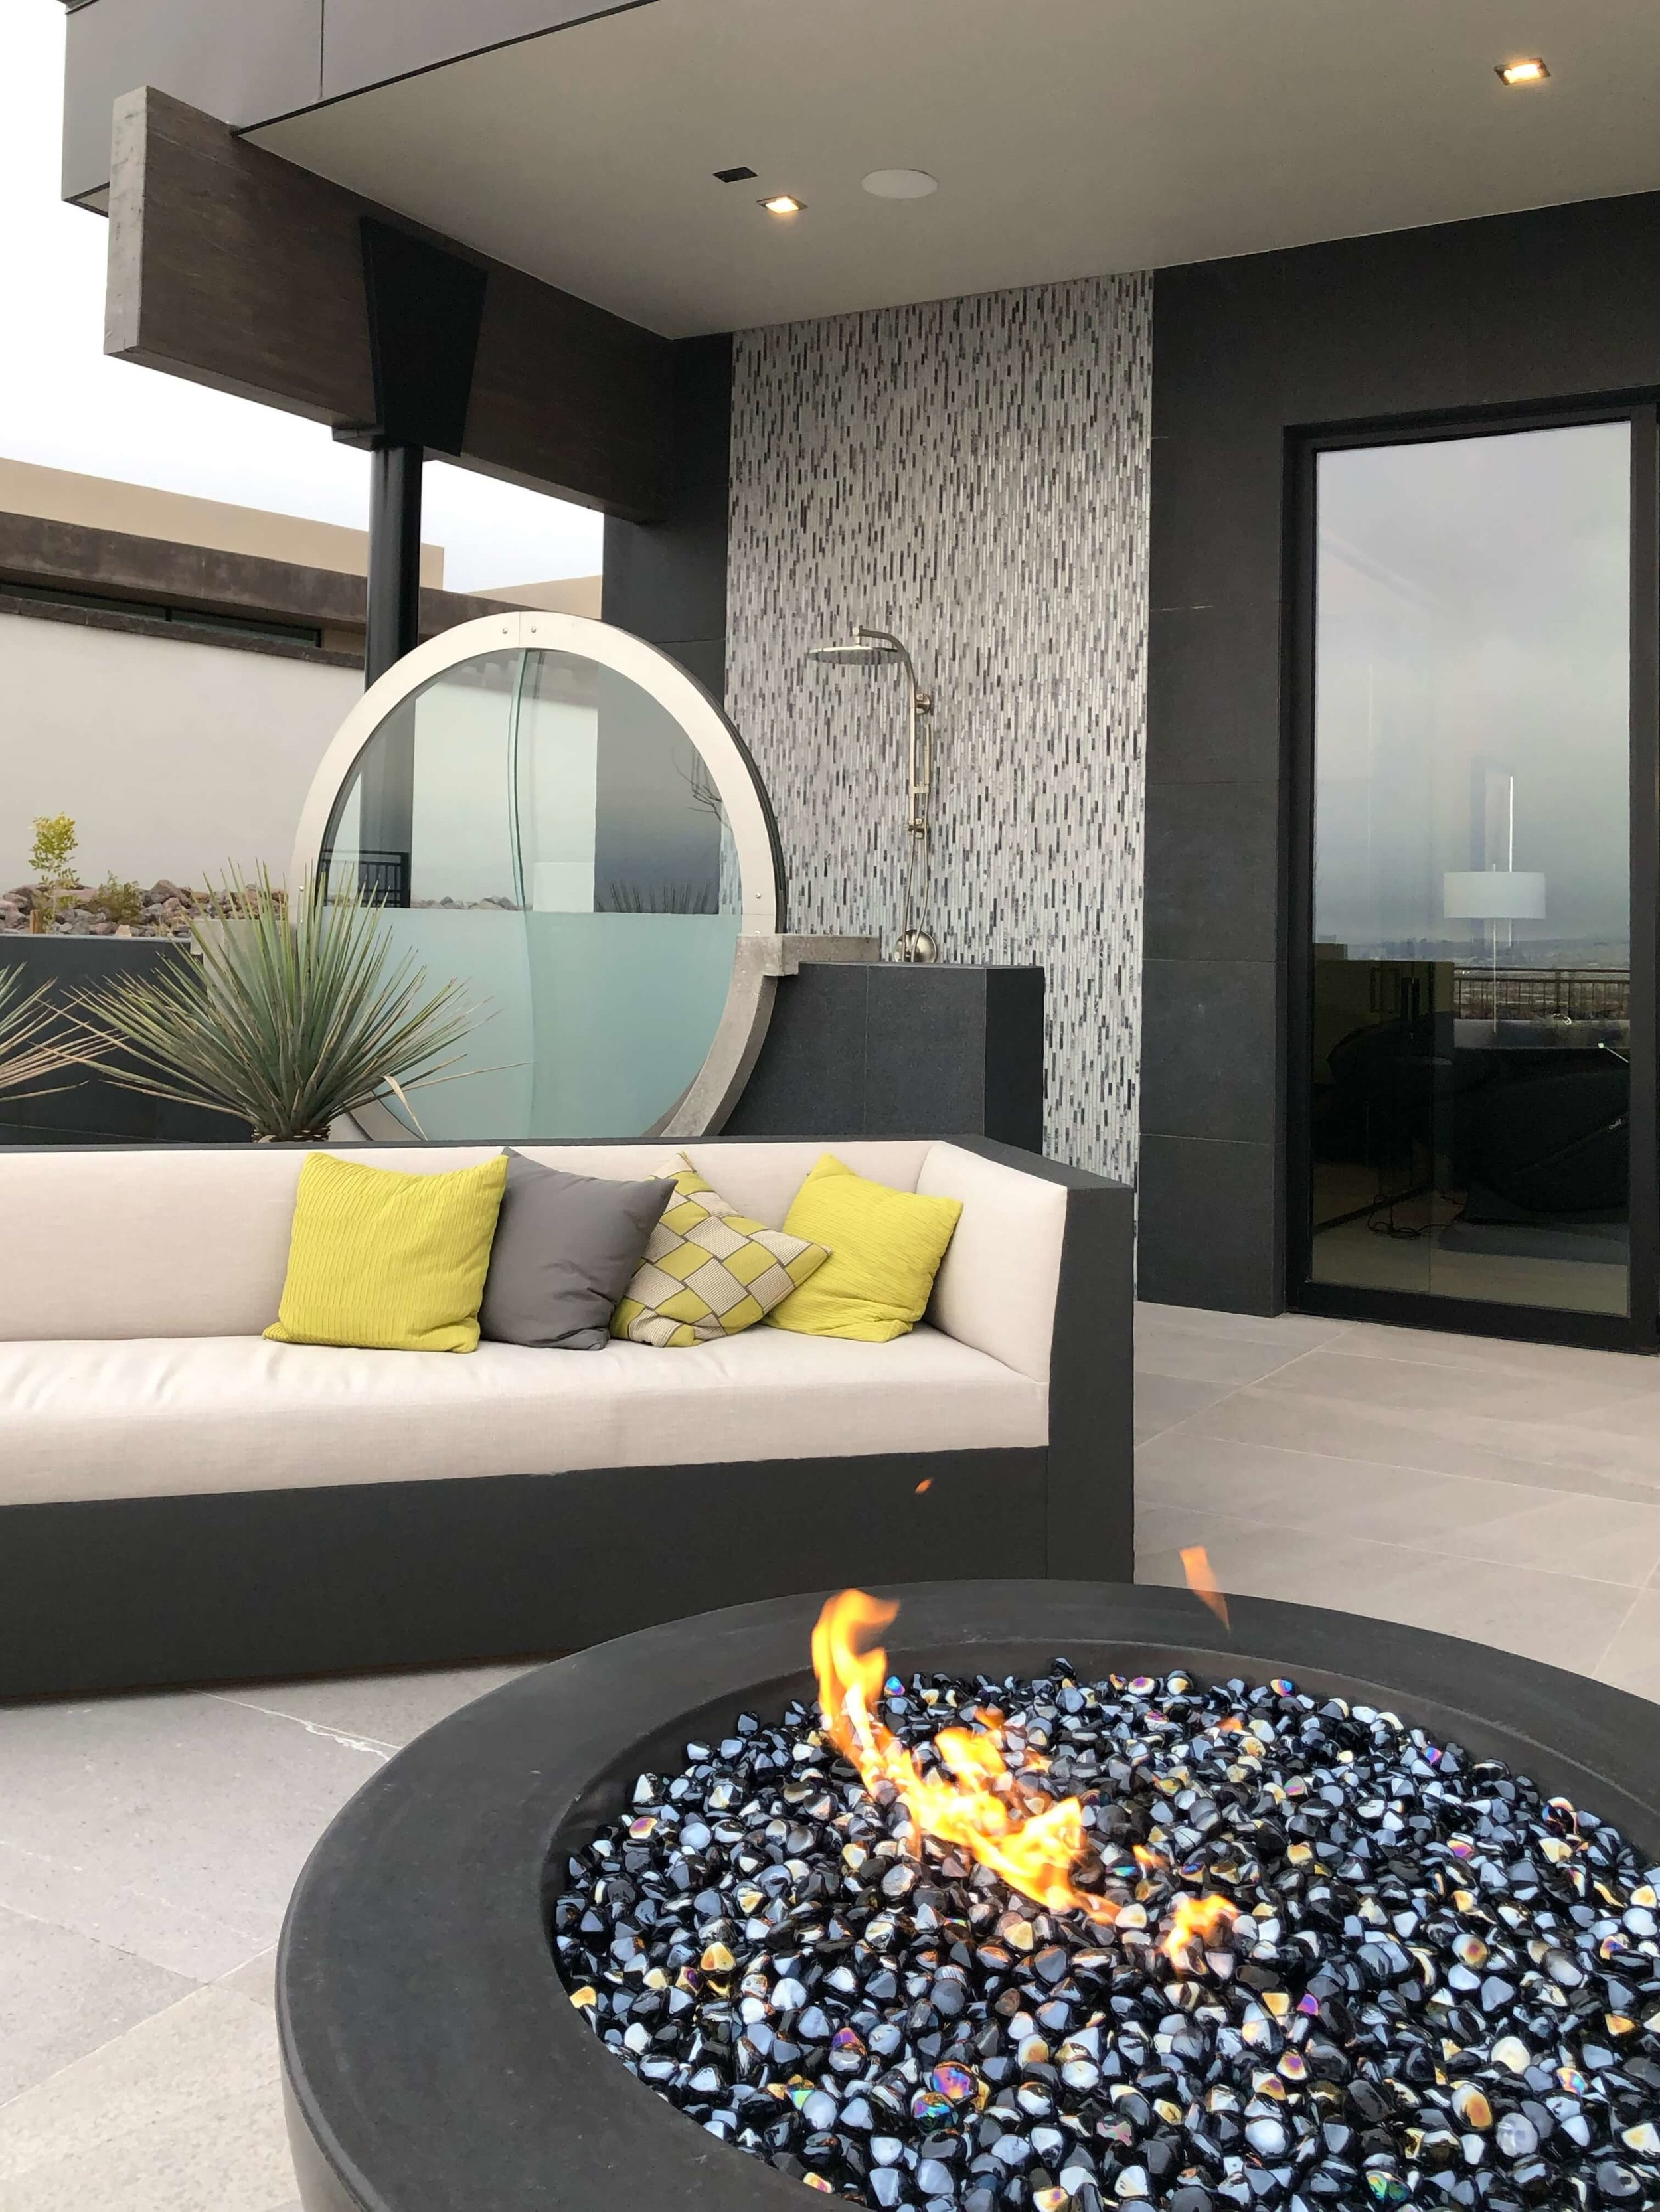 Firepit, lounge area and outdoor shower, The New American Home Tour 2019 | Designed and built by Sun West Custom Homes  #contemporaryhome #firepit